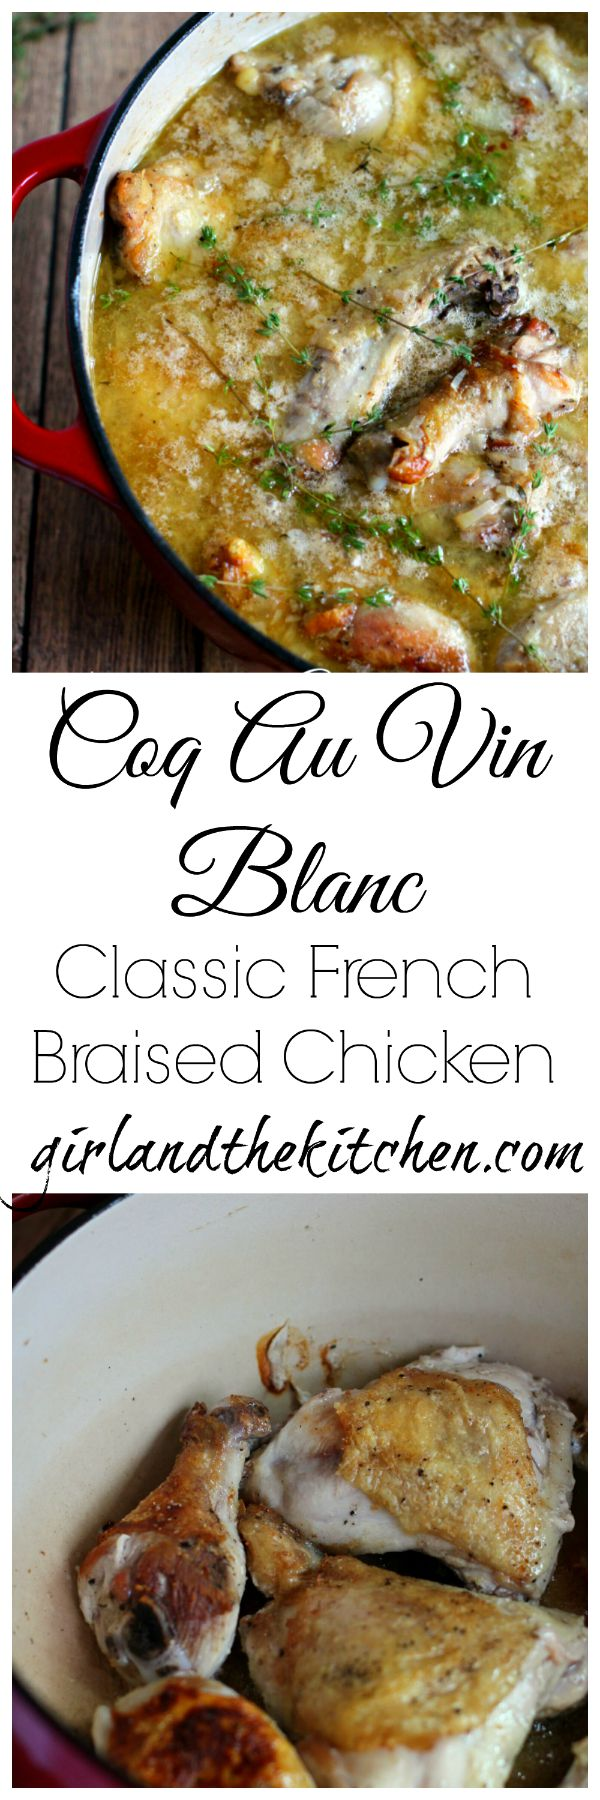 Coq Au Vin Blanc is a classic French dish. White wine braised chicken surrounded by a heavenly and simple sauce